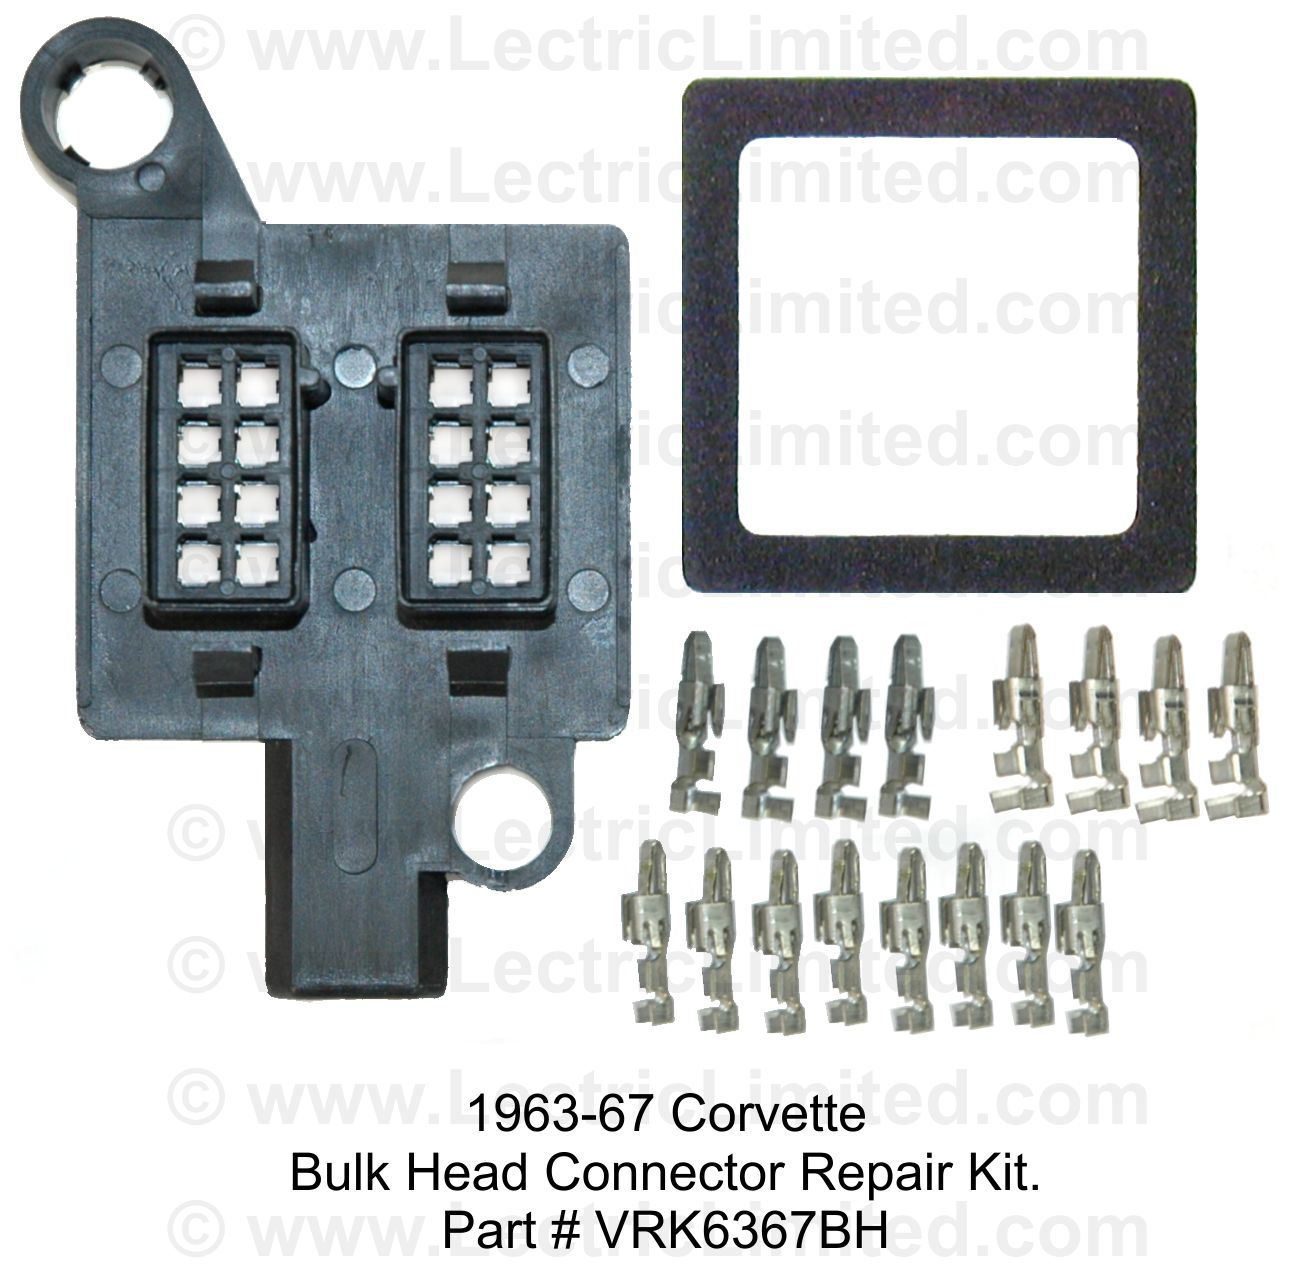 bulk_head_connector_repair_kits repair components 67 Mustang Dash Wiring at webbmarketing.co